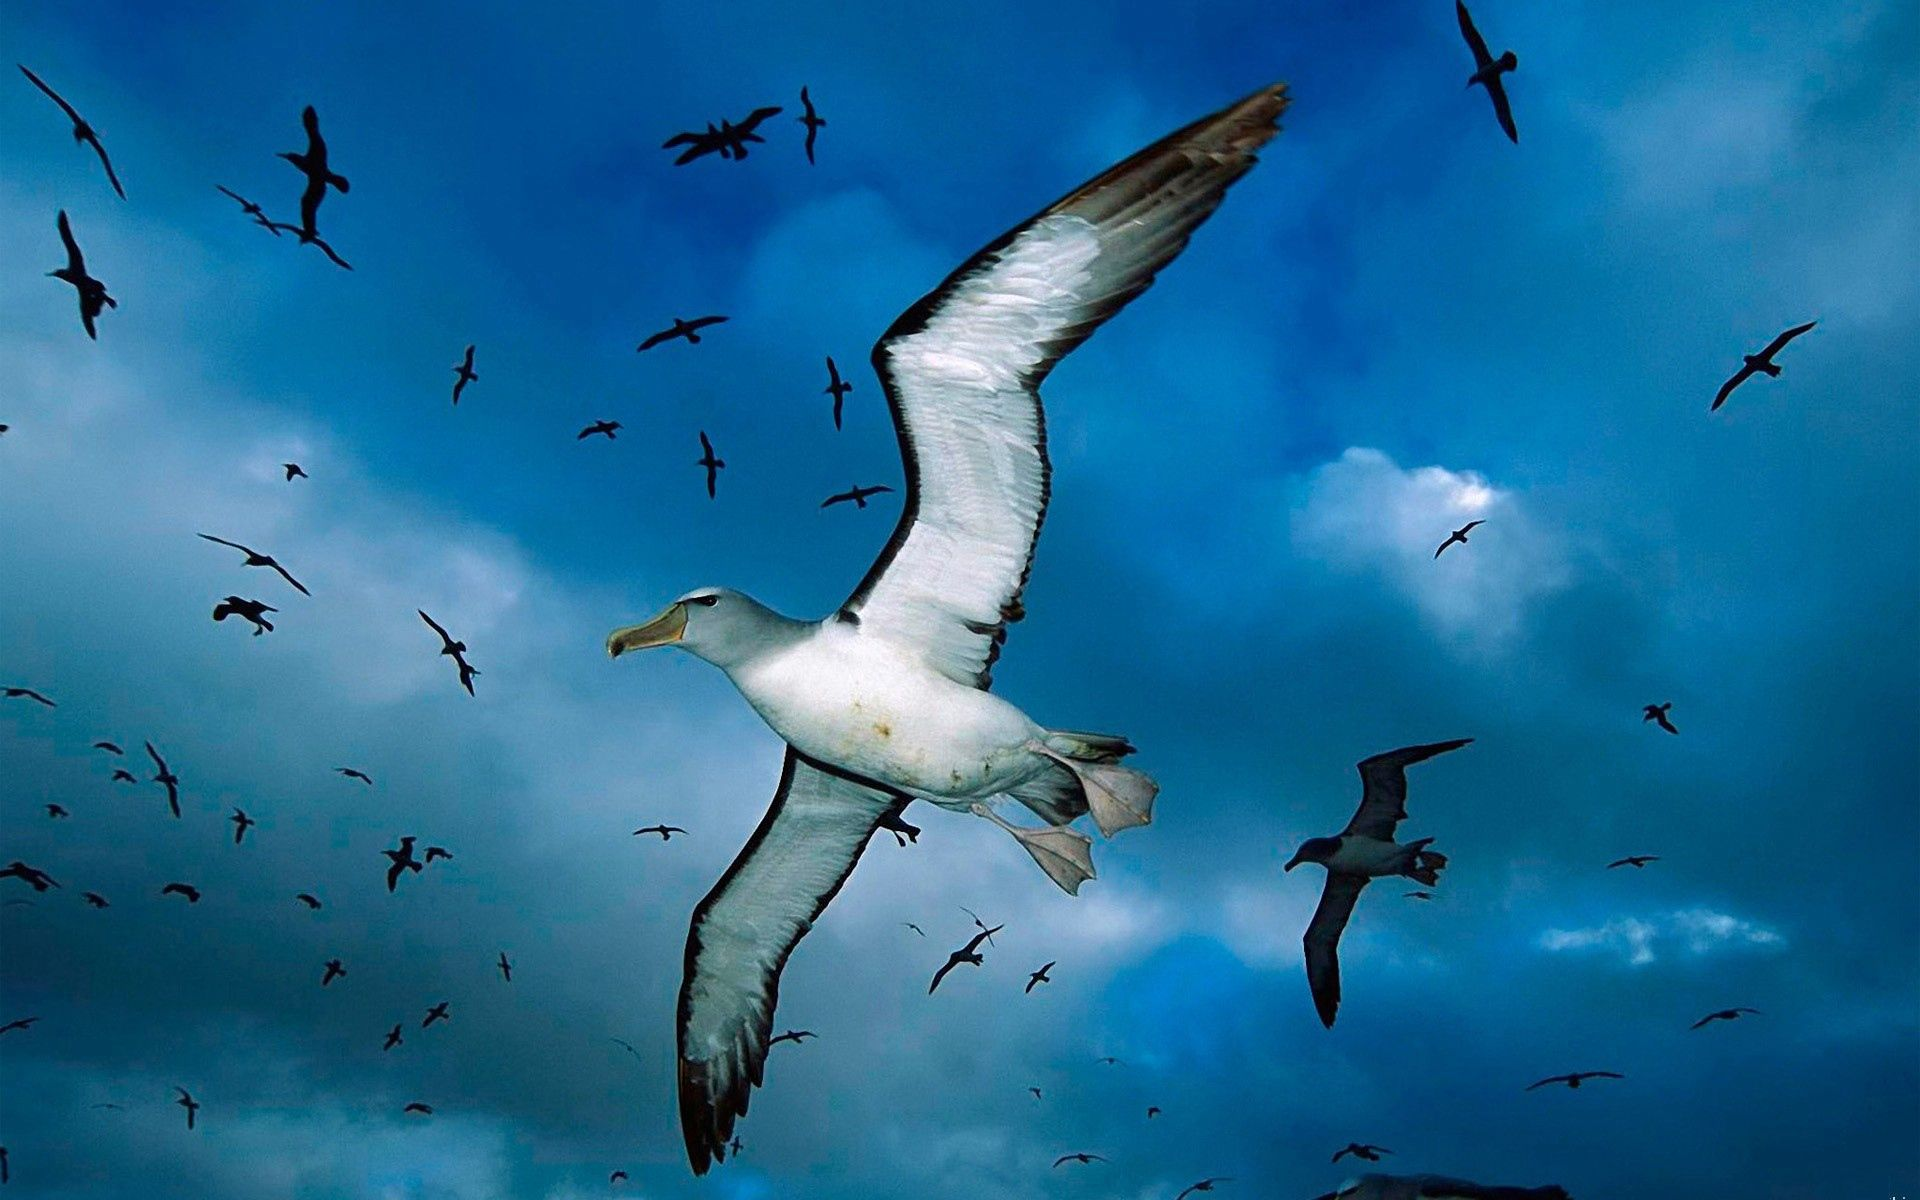 142072 download wallpaper Animals, Flock, Sky, Clouds, Sea, Birds, Seagulls screensavers and pictures for free